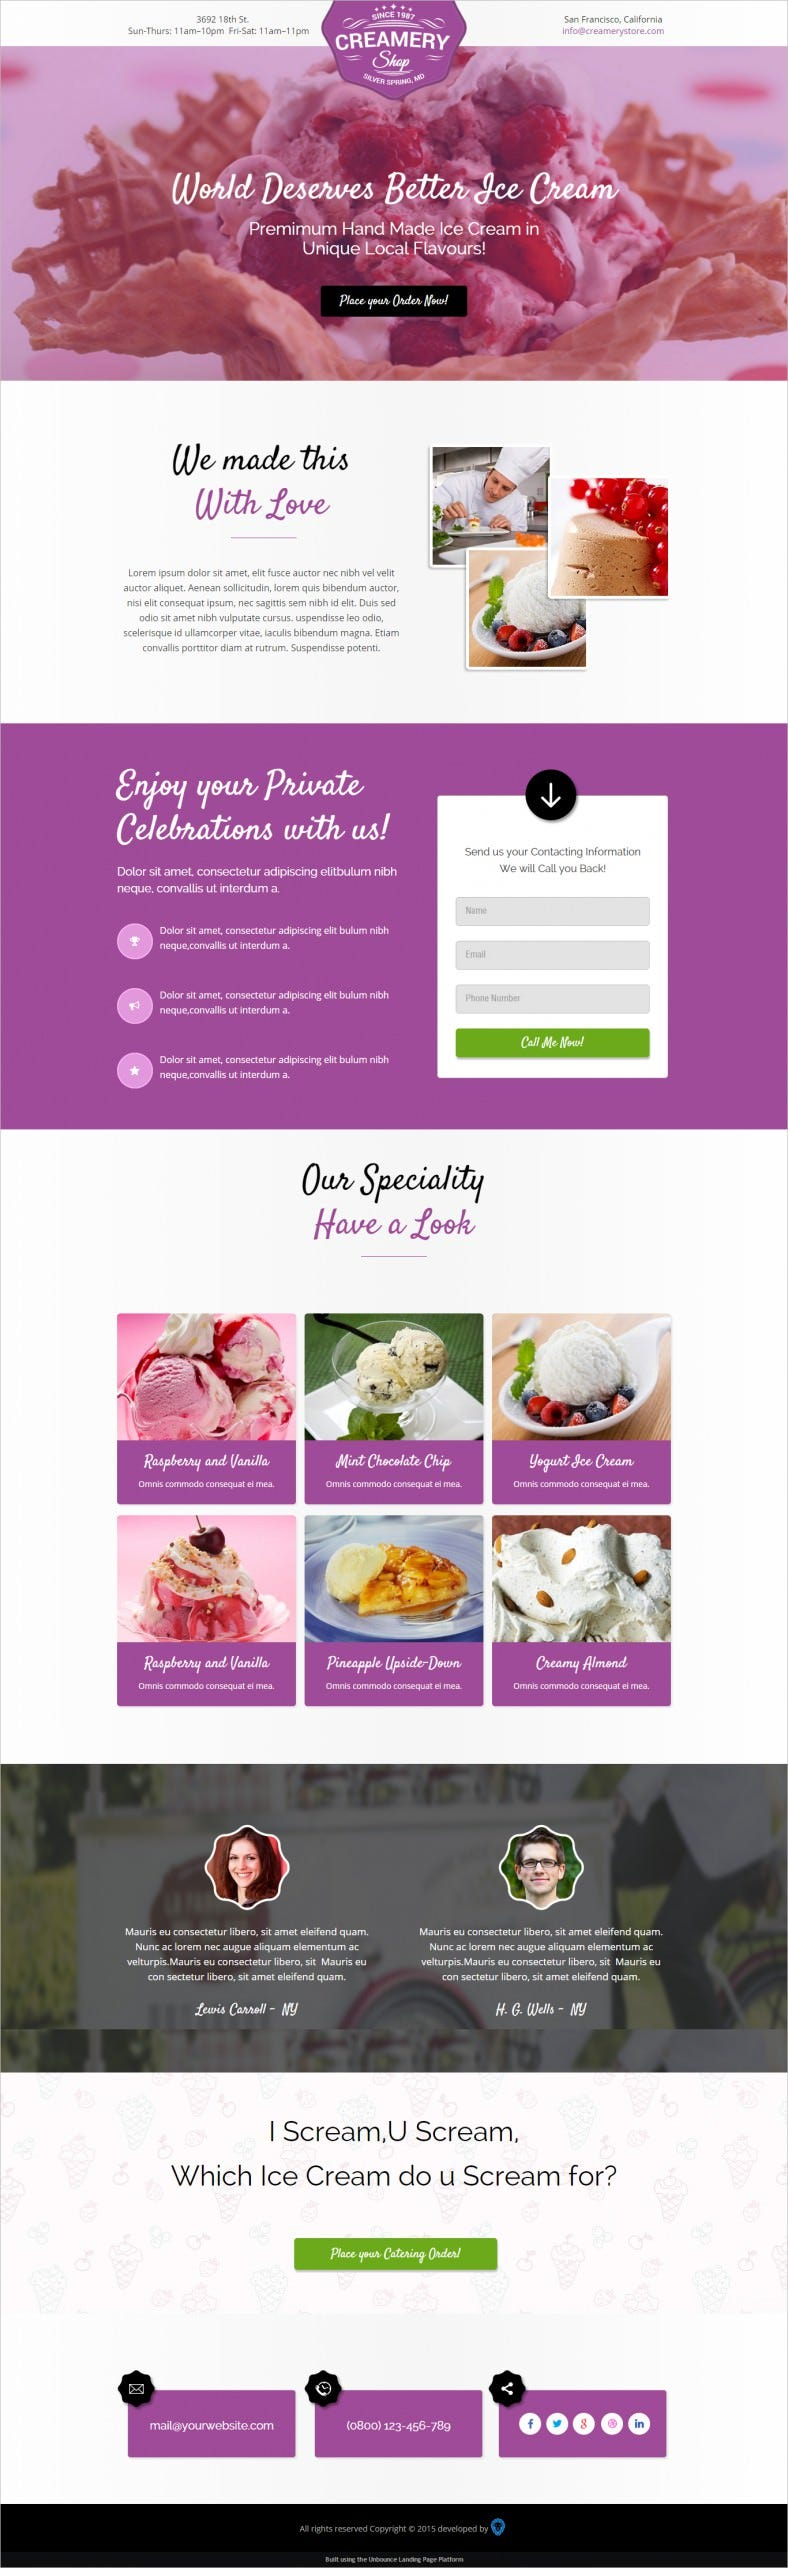 creamery sweets shops landing page template 788x2568